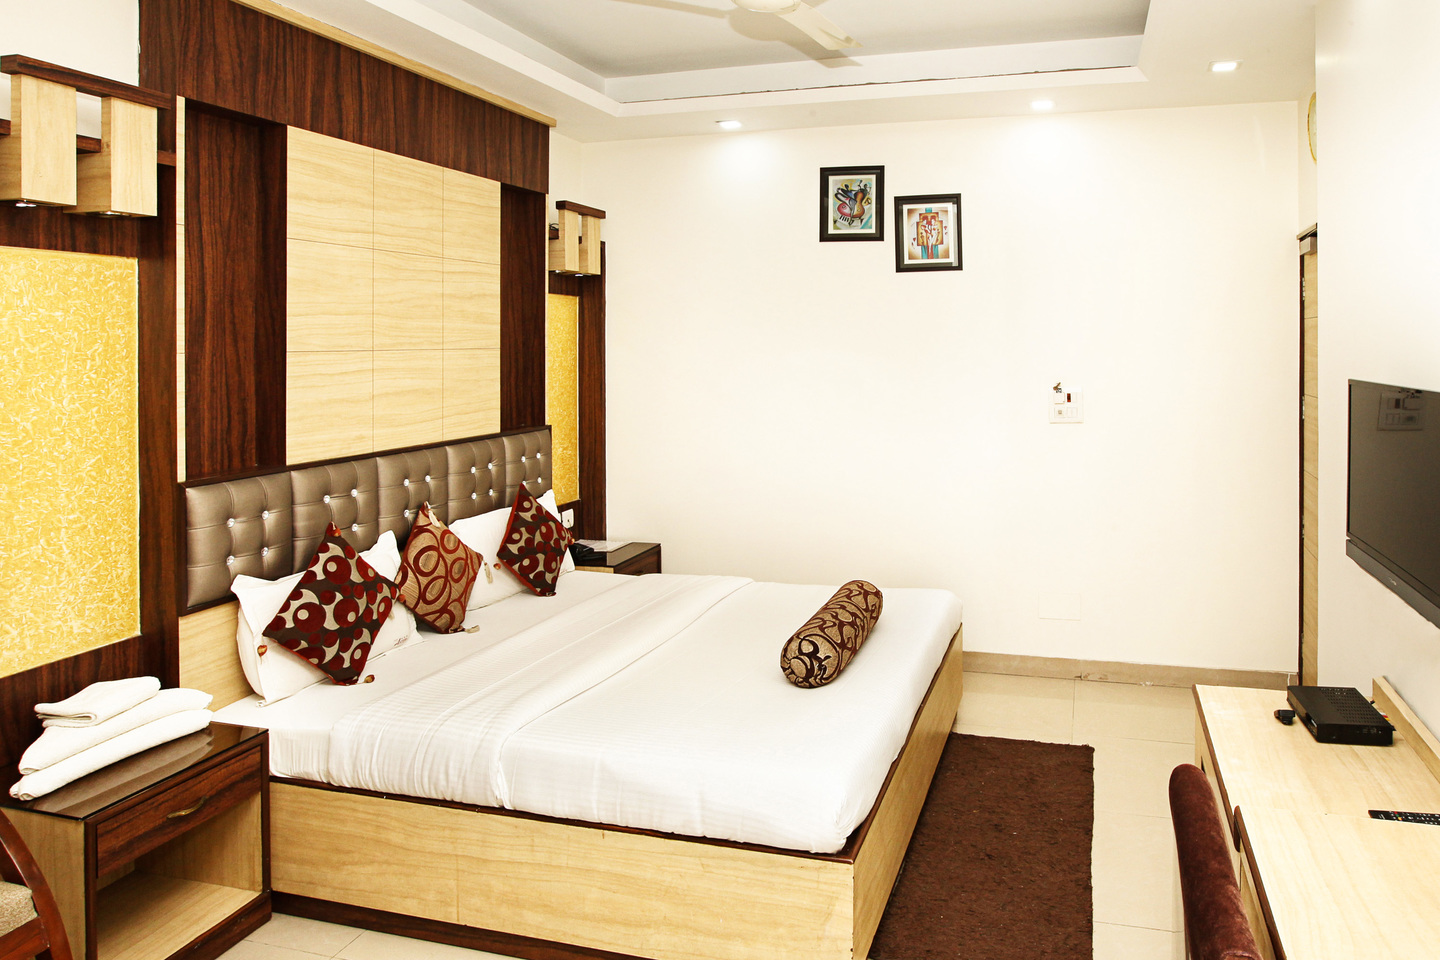 Standard Room, HOTEL ASTER INN - Budget Hotels in New Delhi